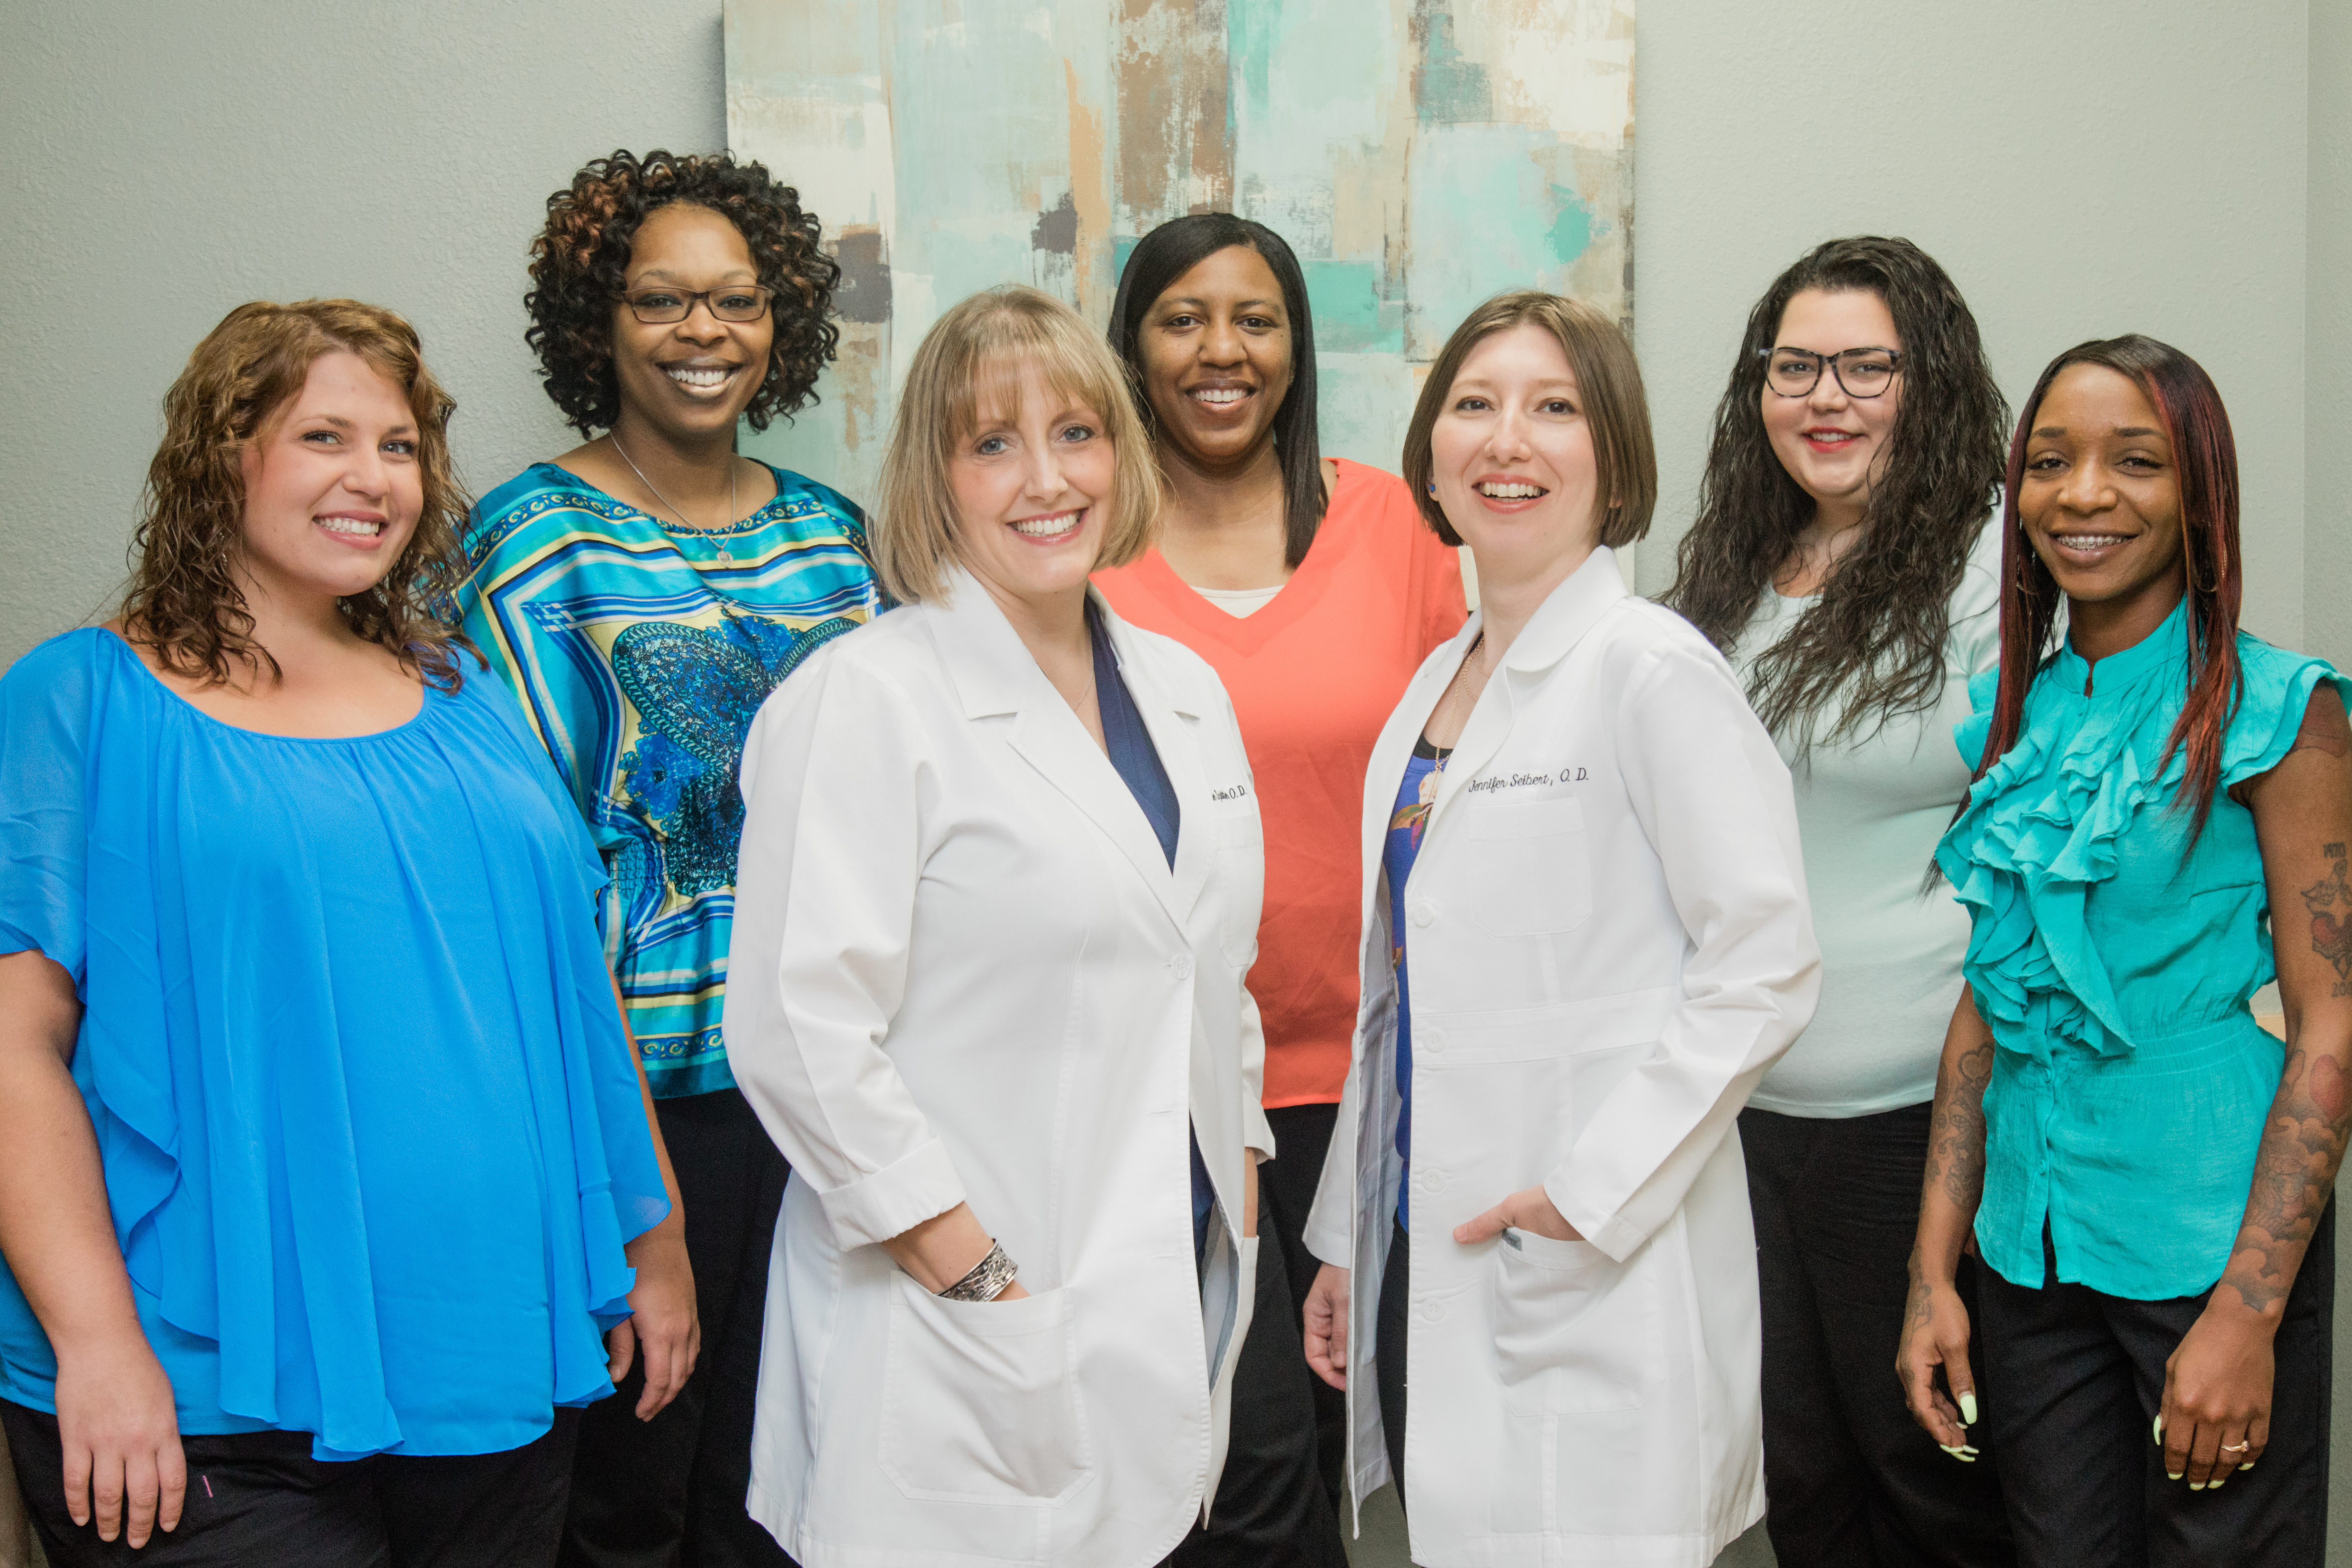 450c5433e115 At Dr. Michelle L. Spittler & Associates, our staff is friendly and  professional, committed to providing exceptional customer service to all of  our Columbia ...